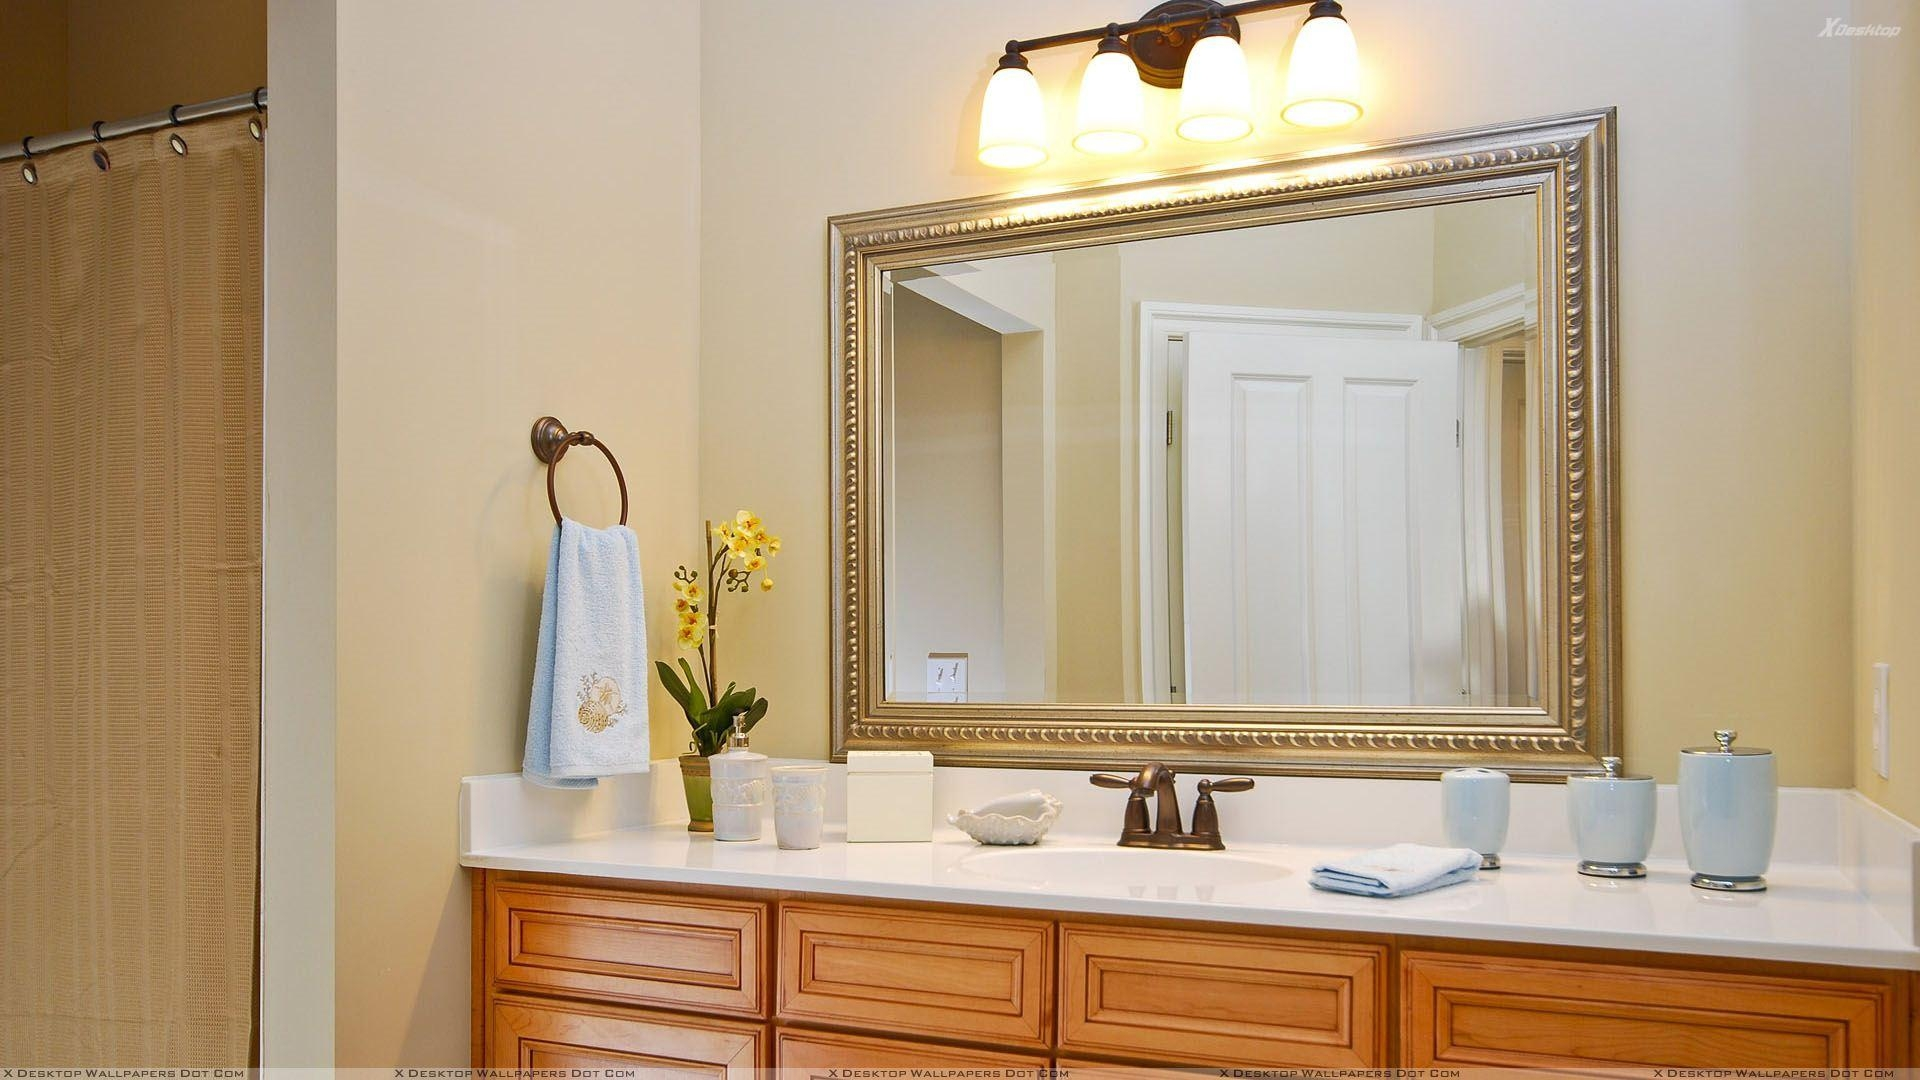 Large Bathroom Vanity Mirrors 20 Collection Of Decorative Mirrors For Bathroom Vanity